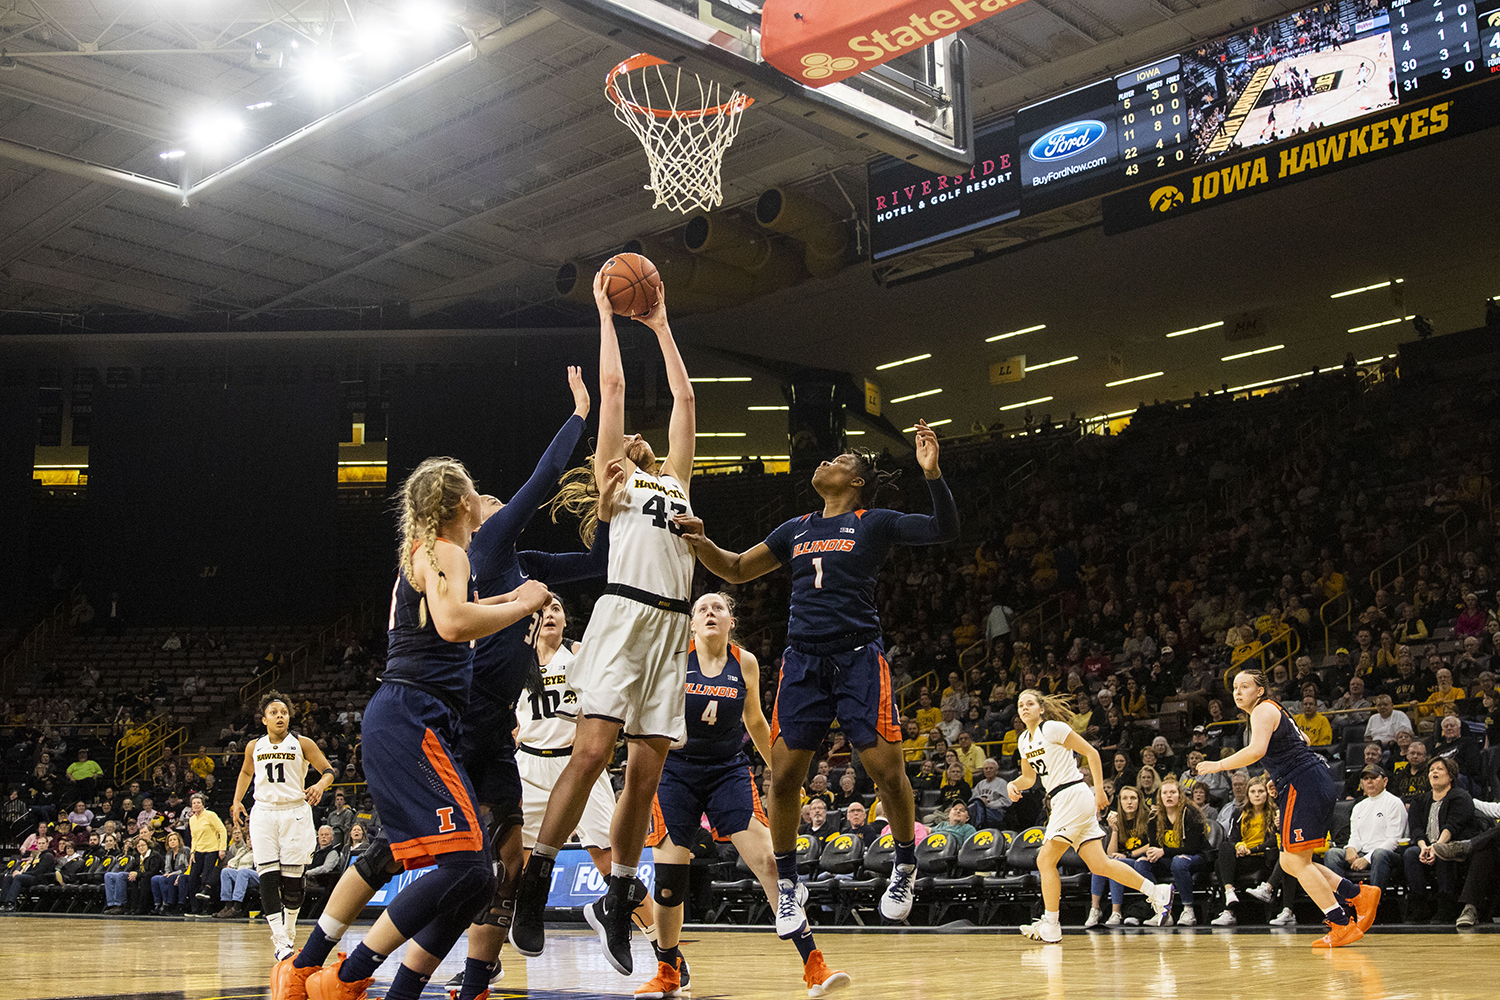 Iowa+forward+Amanda+Ollinger+grabs+a+rebound+during+the+Iowa%2FIllinois+women%27s+basketball+game+at+Carver-Hawkeye+Arena+on+Thursday%2C+February+14%2C+2019.+The+Hawkeyes+defeated+the+Fighting+Illini%2C+88-66.+